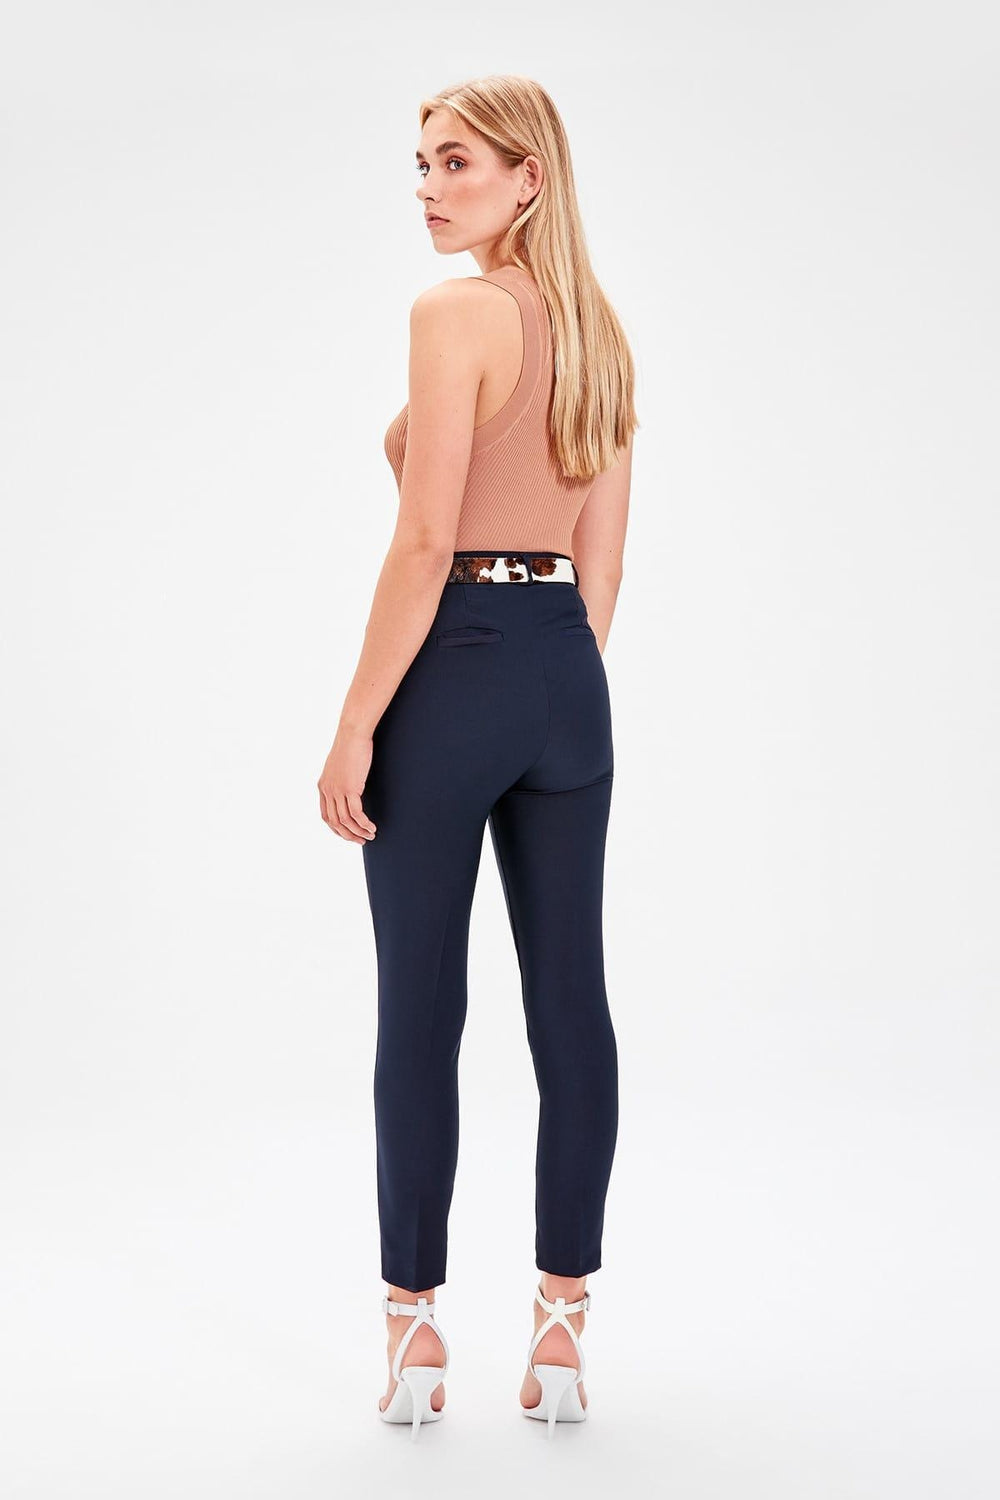 Miss Zut Miss Zut Navy Blue Basic Pants Miss Zut &CO